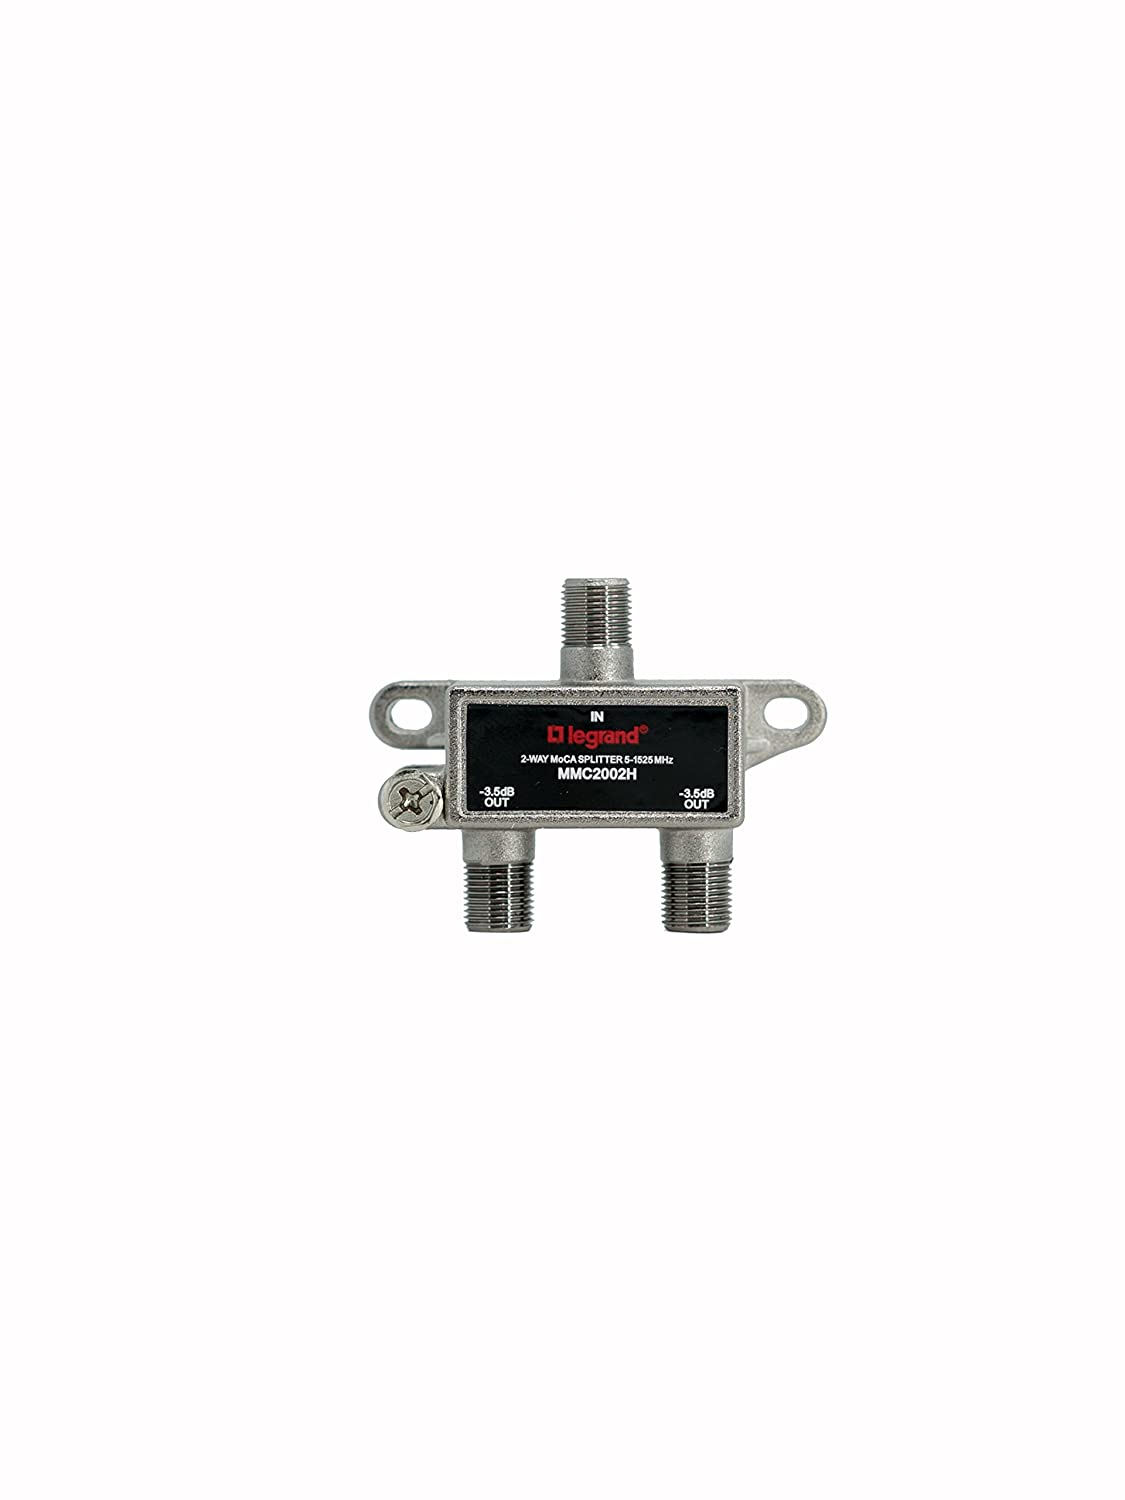 Legrand - On-Q VM2204V1 4Way Digital Cable Splitter with Coax Network Support On Q